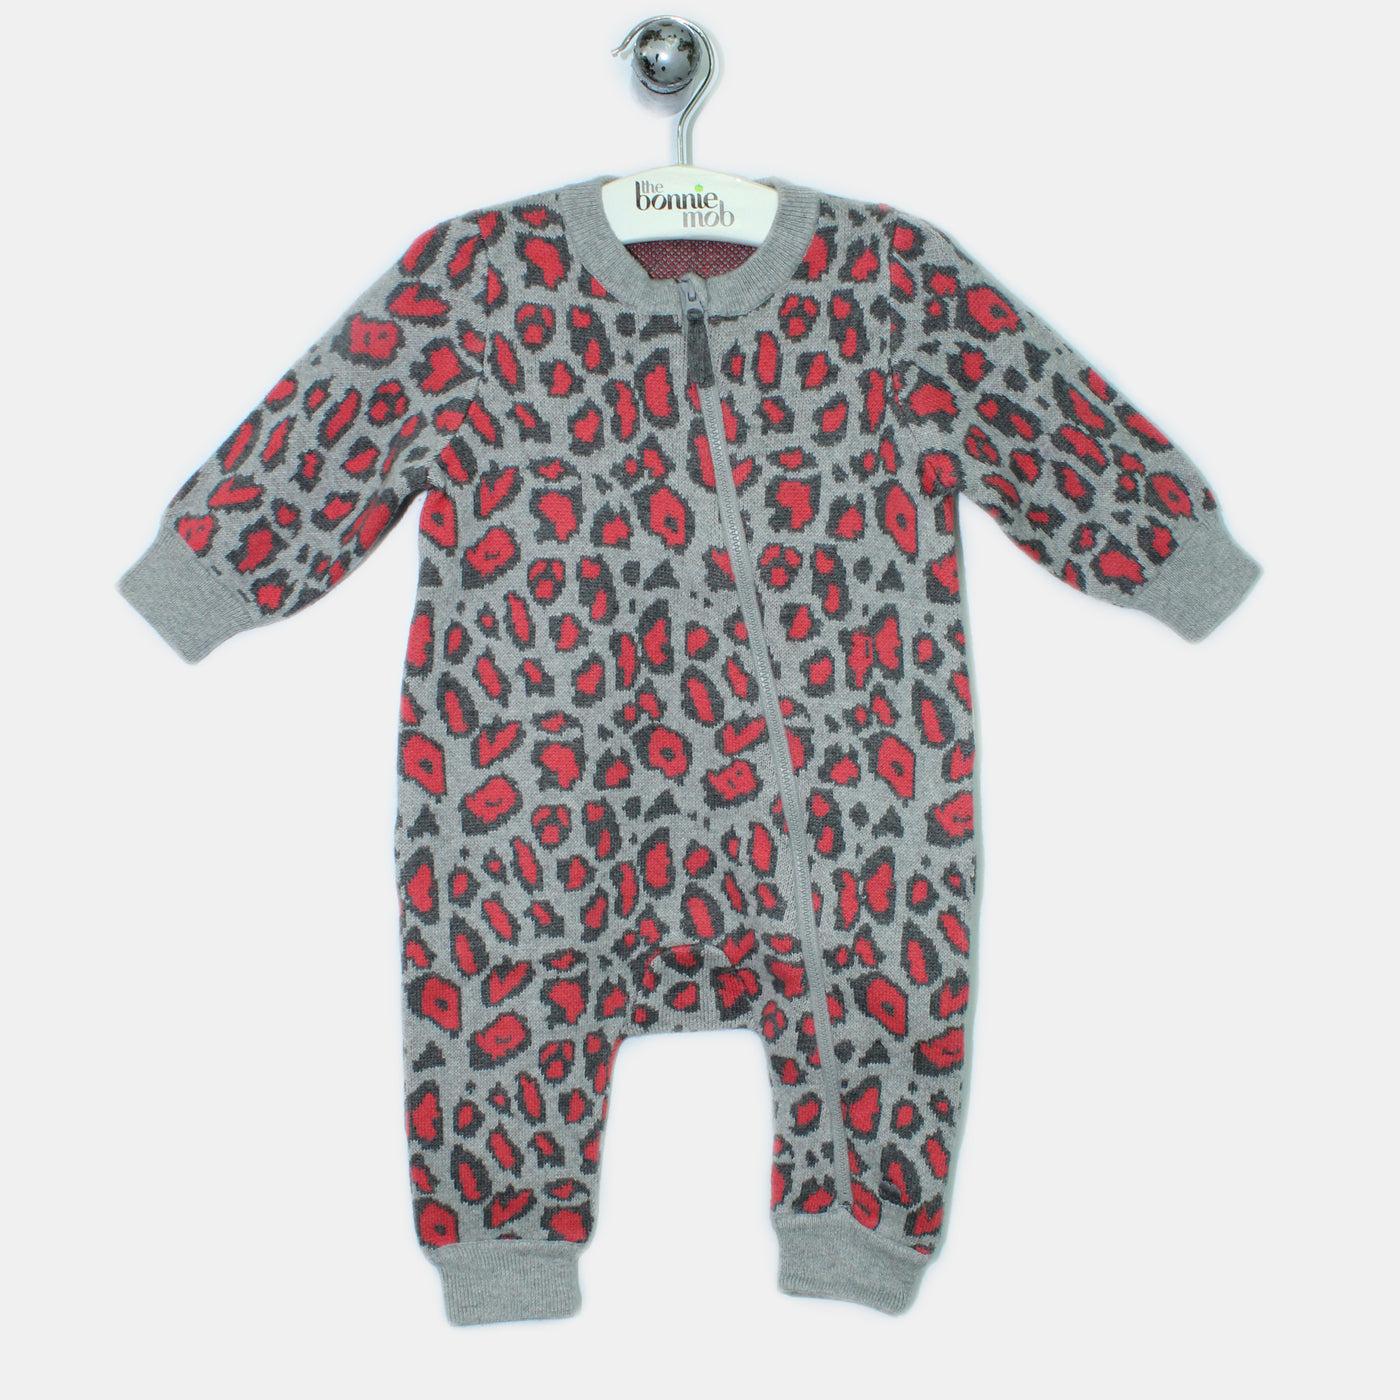 L-LEON-Leopard Print Playsuit-Baby Girl-Red